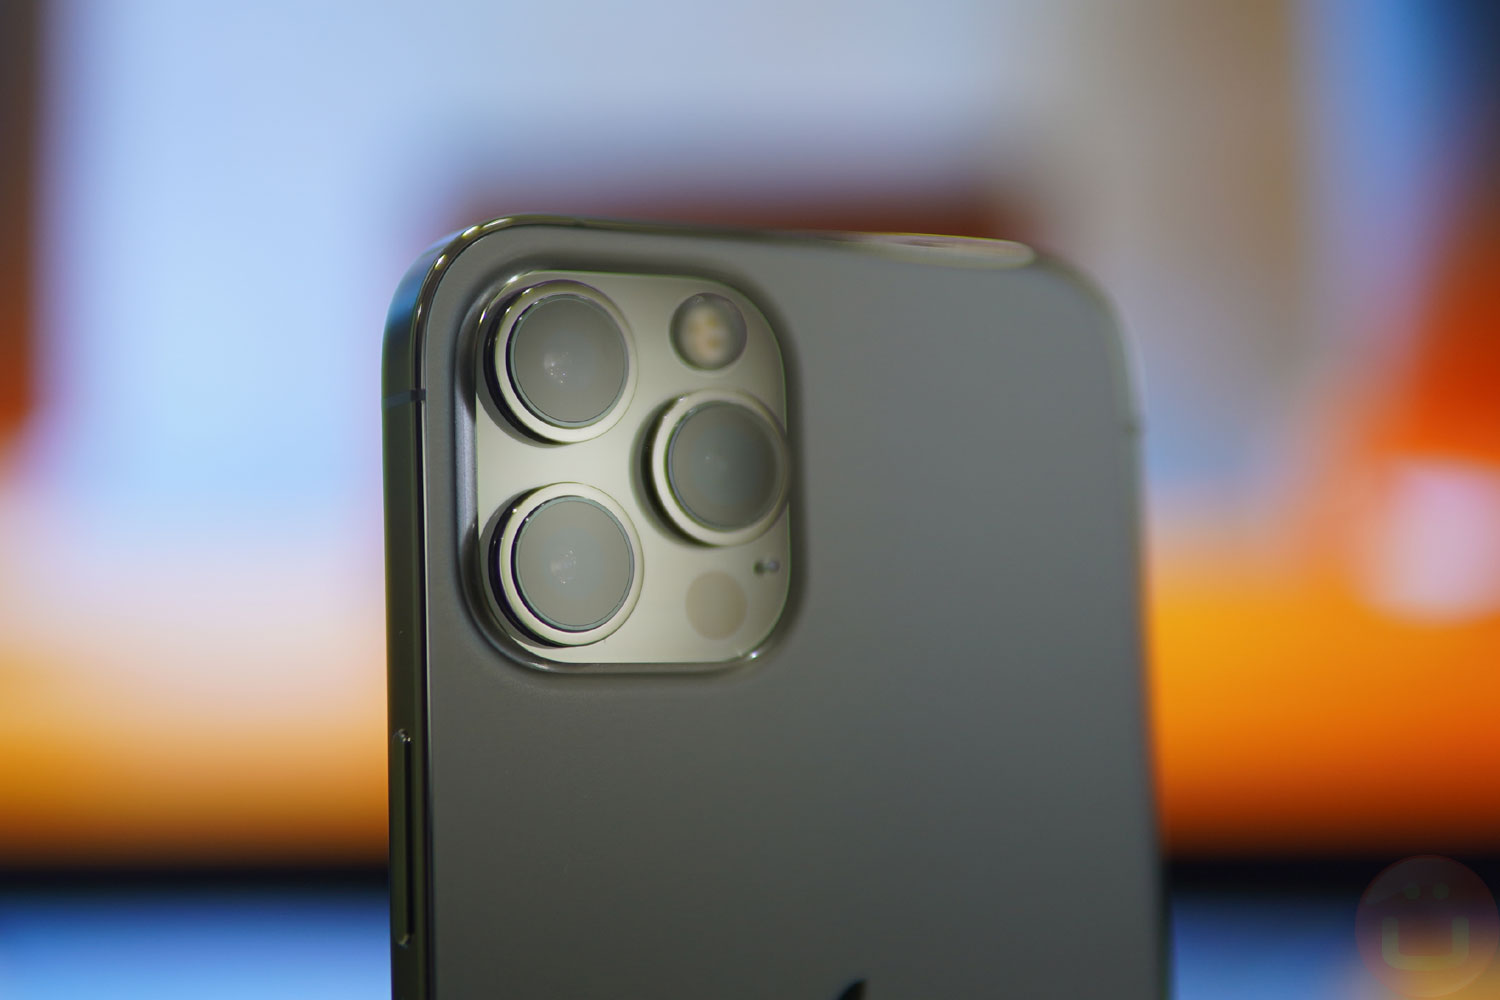 No Major Upgrades Expected For iPhone's Main Camera Until 2023